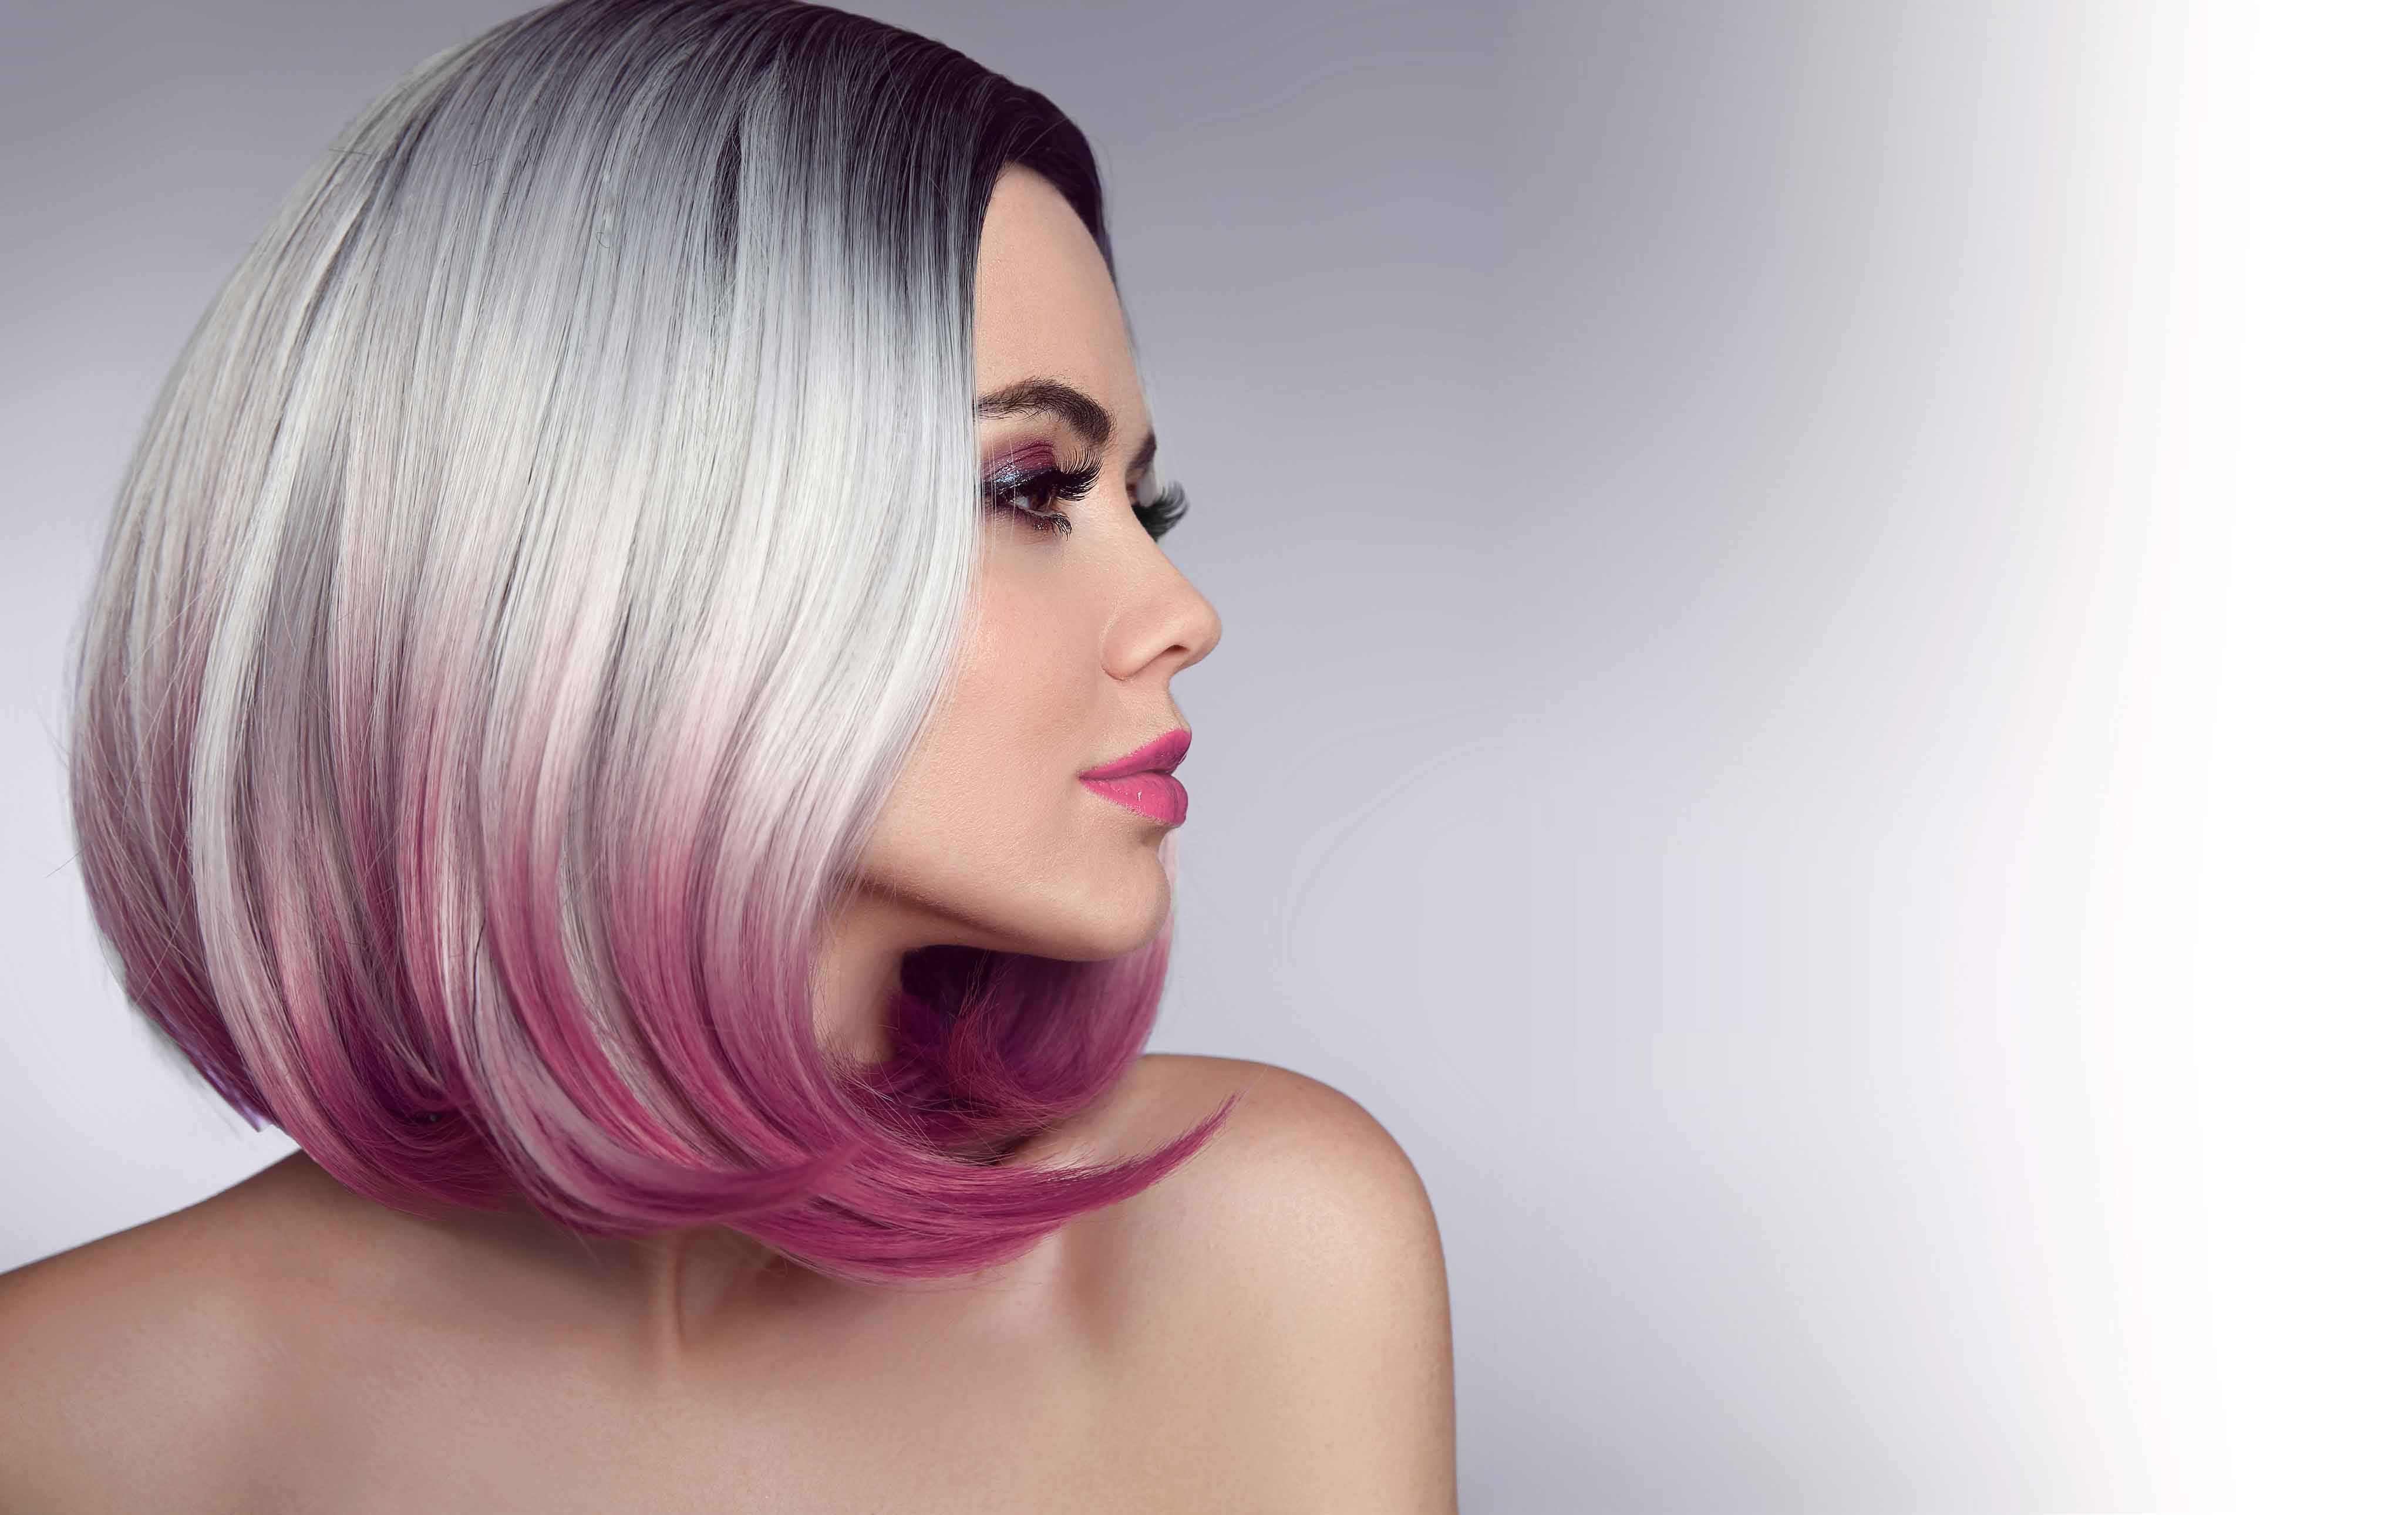 Lisa Frank Hair Is the Latest Hair-Color Trend to Take Instagram | Allure